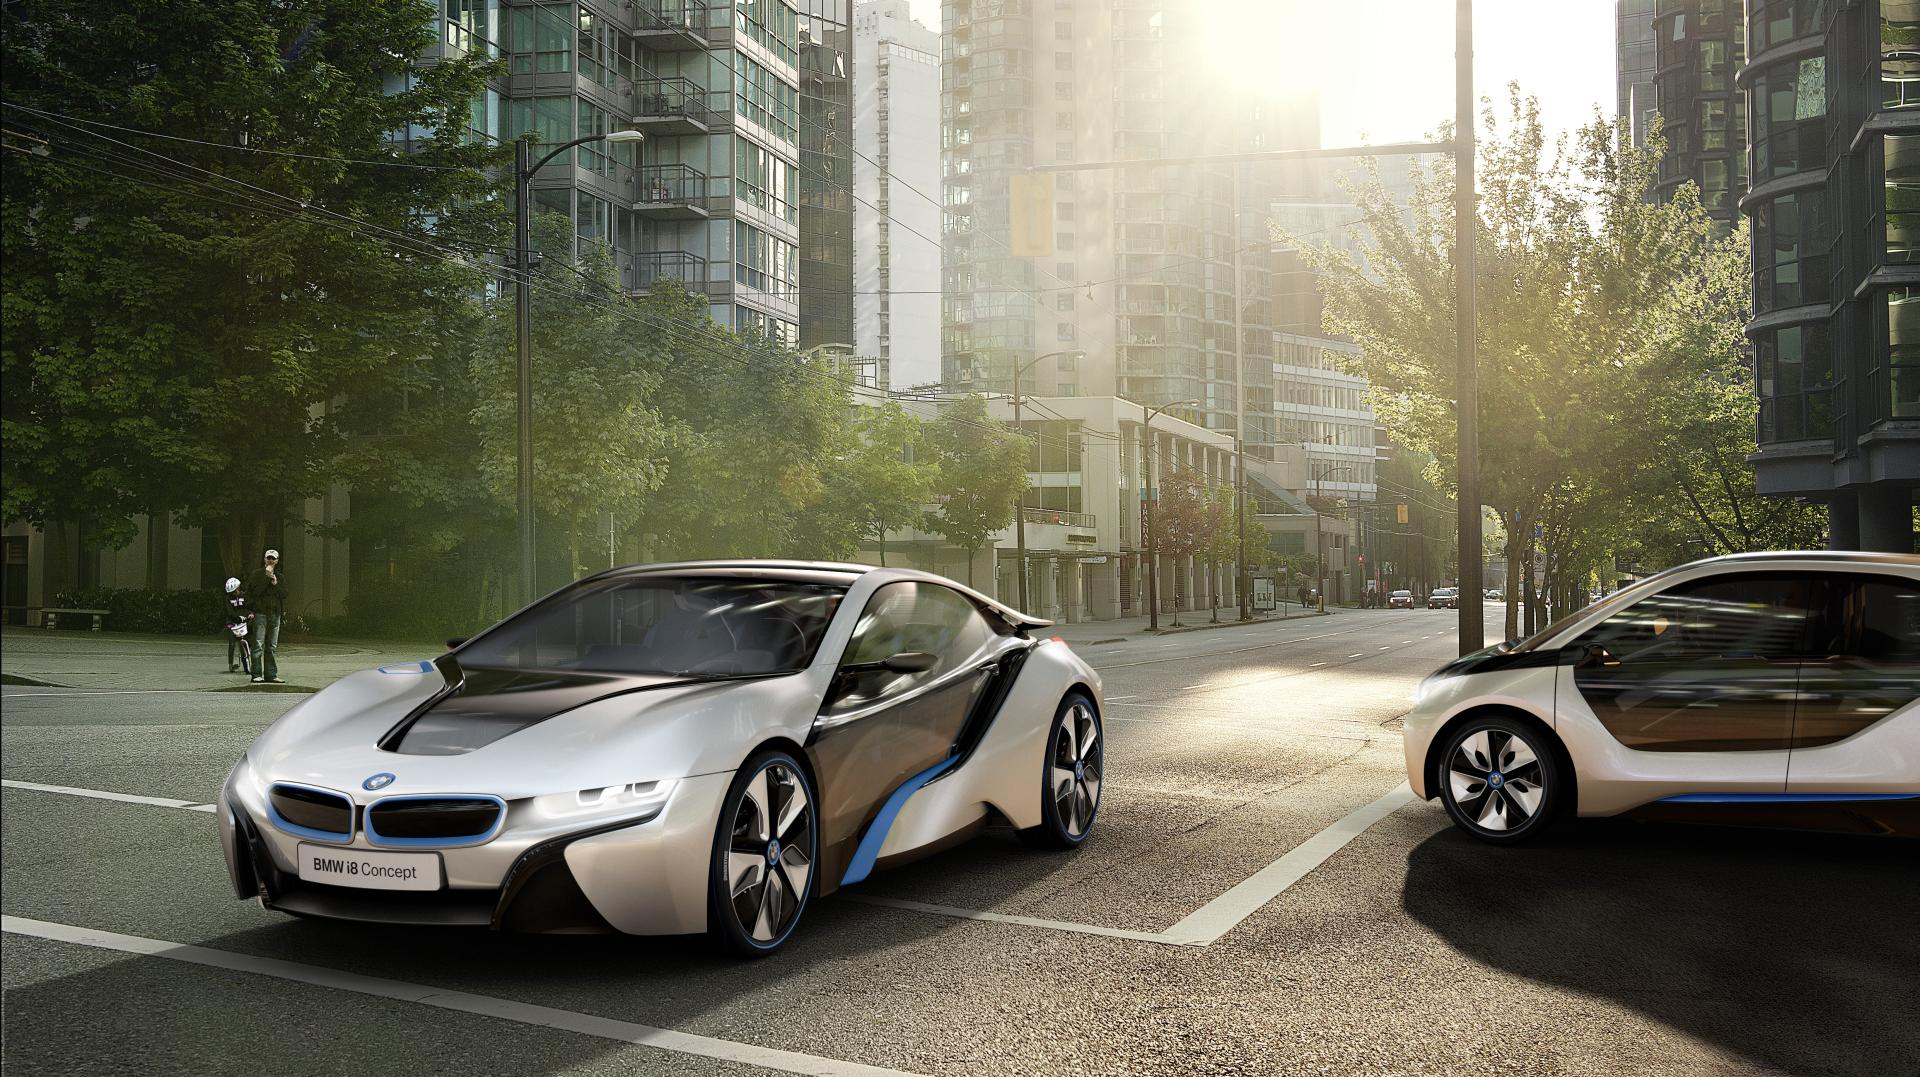 2012 BMW i8 Concept News and Information, Research, and History